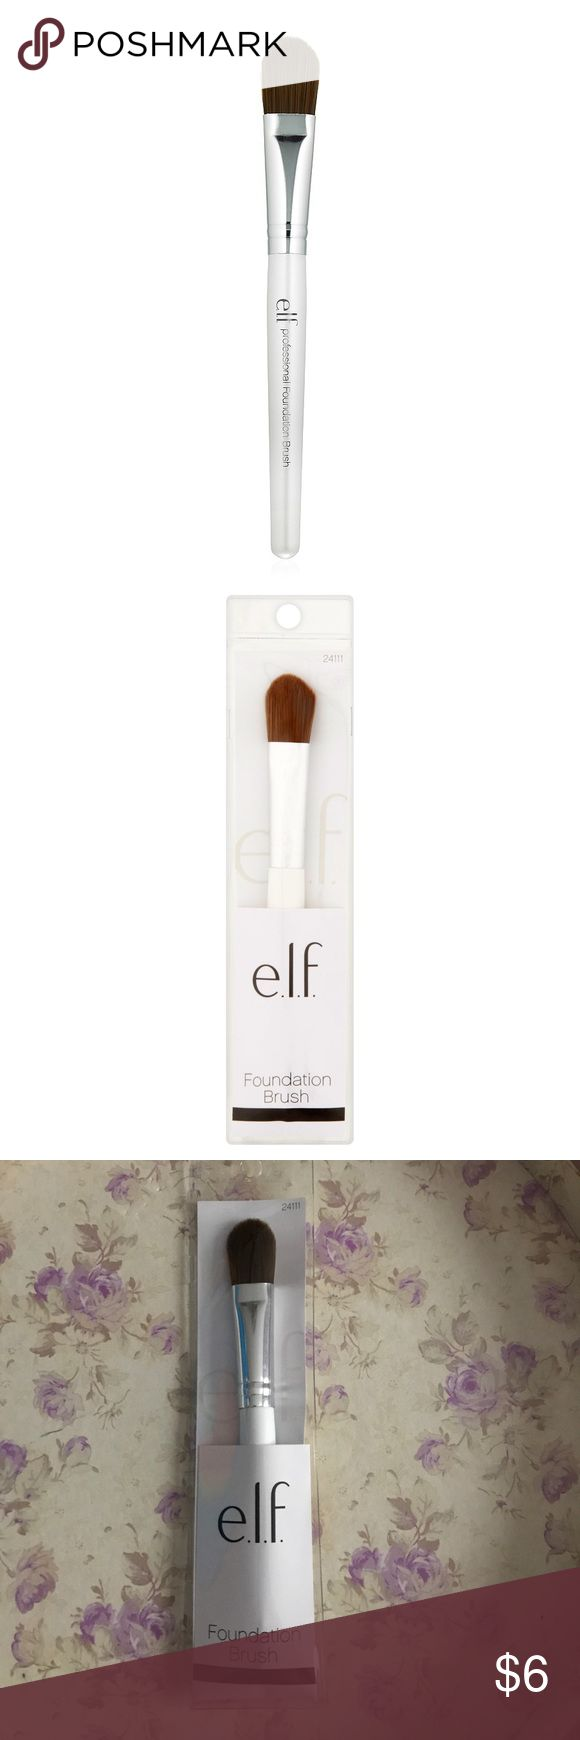 Elf Foundation Brush NWT!!! Elf Foundation Brush That Achieves an Ultra Smooth Finish When Applying Foundation Or Tinted Moisturizer... Love To Bundle Happy Poshing 🤗🤗🤗 ELF Makeup Brushes & Tools